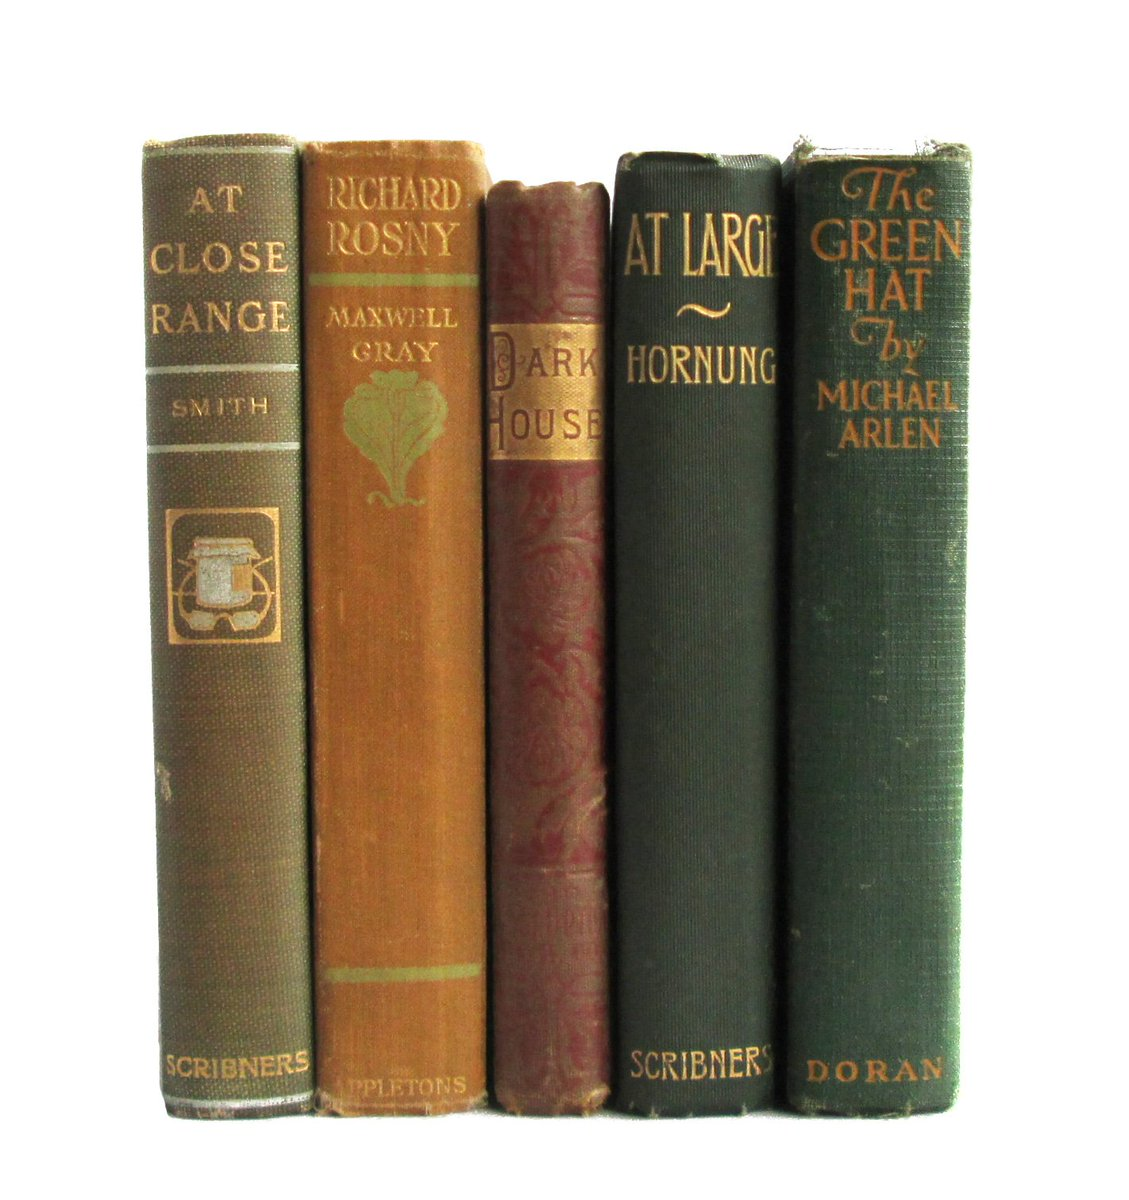 I'm giving away these 10 decorative antiquarian books this week:  https://t.co/cjEnjyLOM7 To enter, reply or RT... https://t.co/BHCjcgIDBm